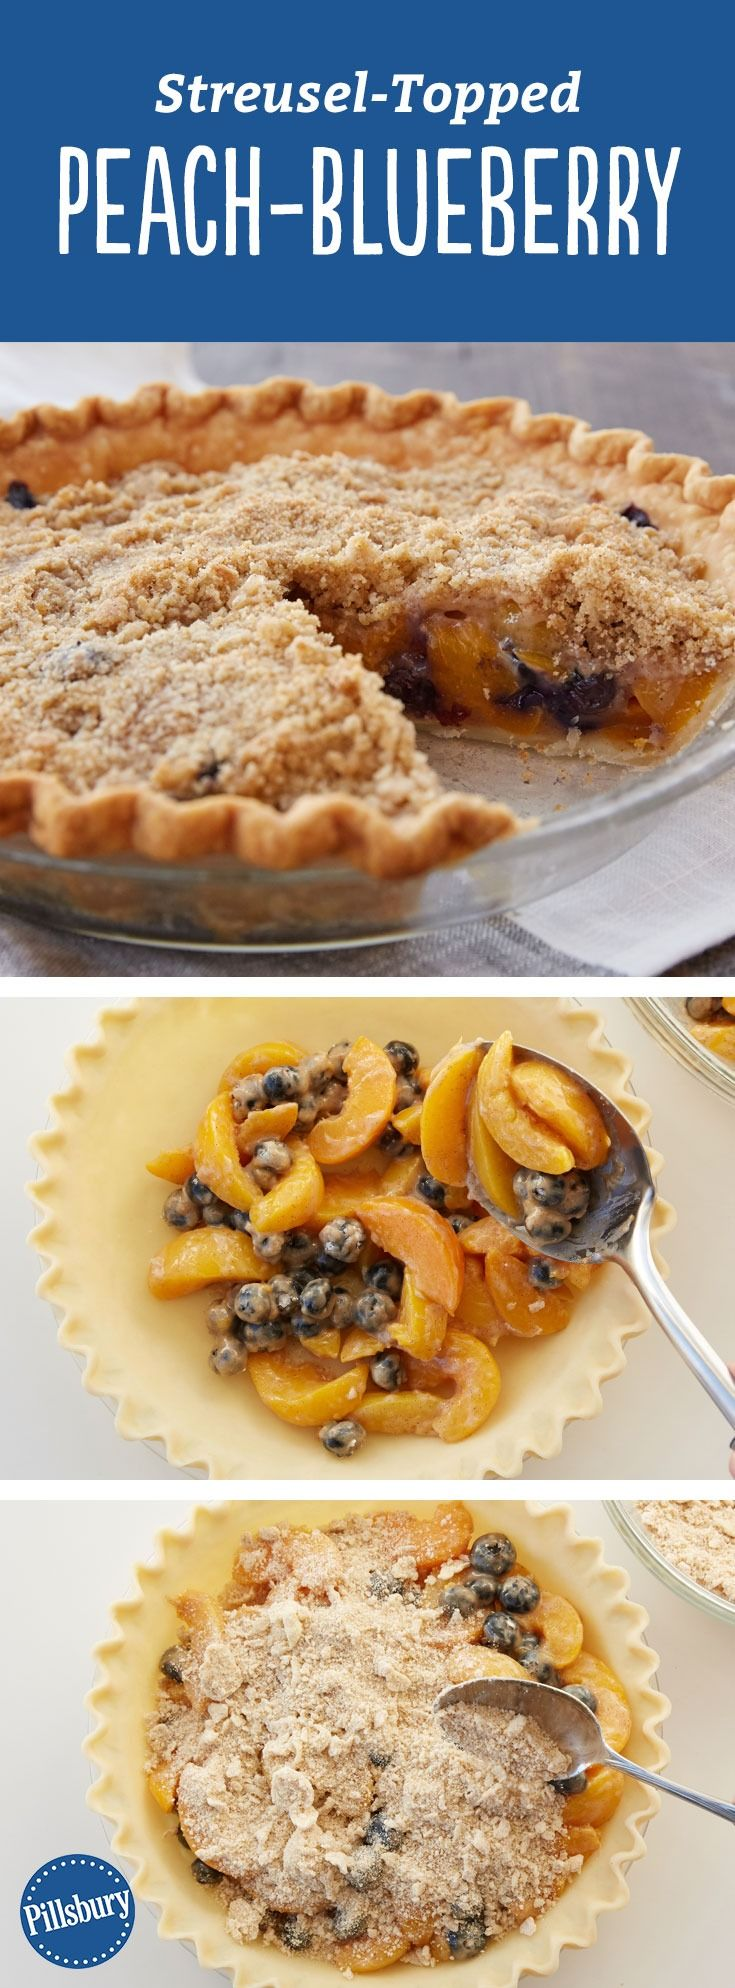 Streusel-Topped Peach-Blueberry Pie Recipe - Two favorite pie flavors in one crumble-topped pie? We're all about it.